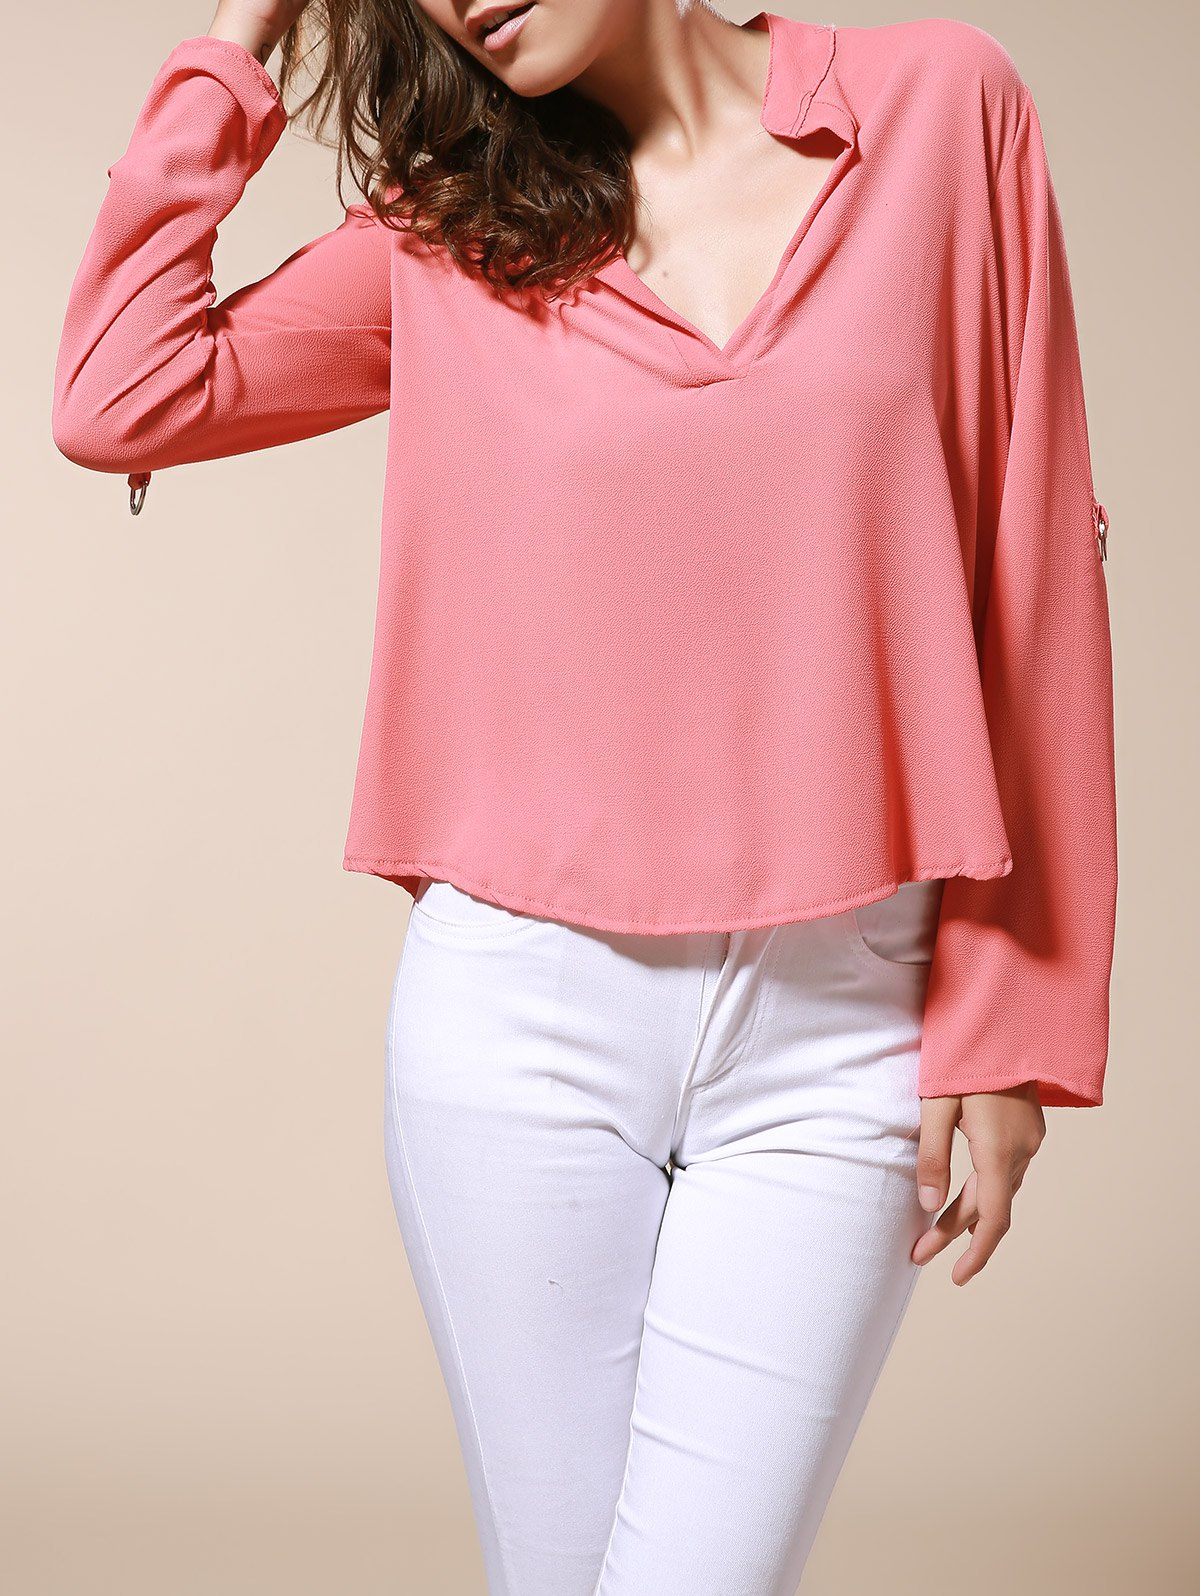 Simple Style Solid Color V-Neck 3/4 Sleeve Chiffon Blouse For Women at 0017